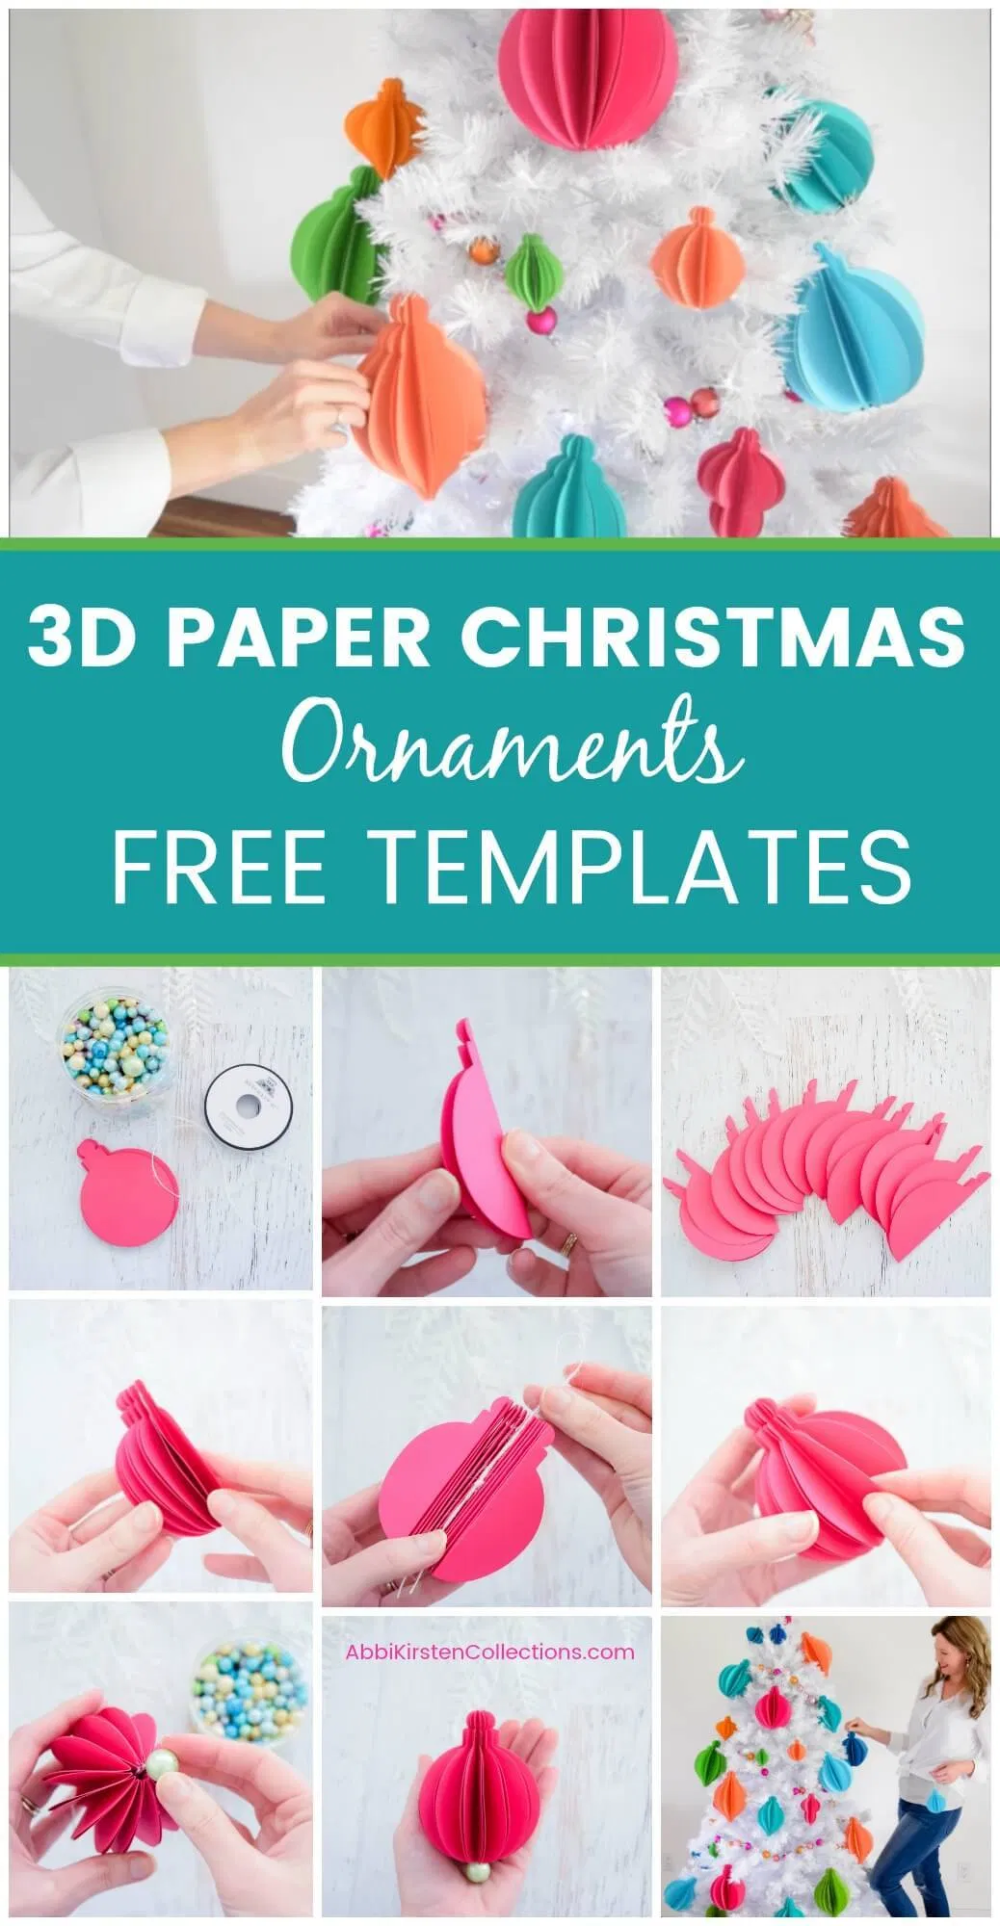 3d Paper Christmas Ornaments Easy Tree Ornament Templates In 2020 Paper Christmas Ornaments Paper Christmas Decorations Christmas Ornament Template